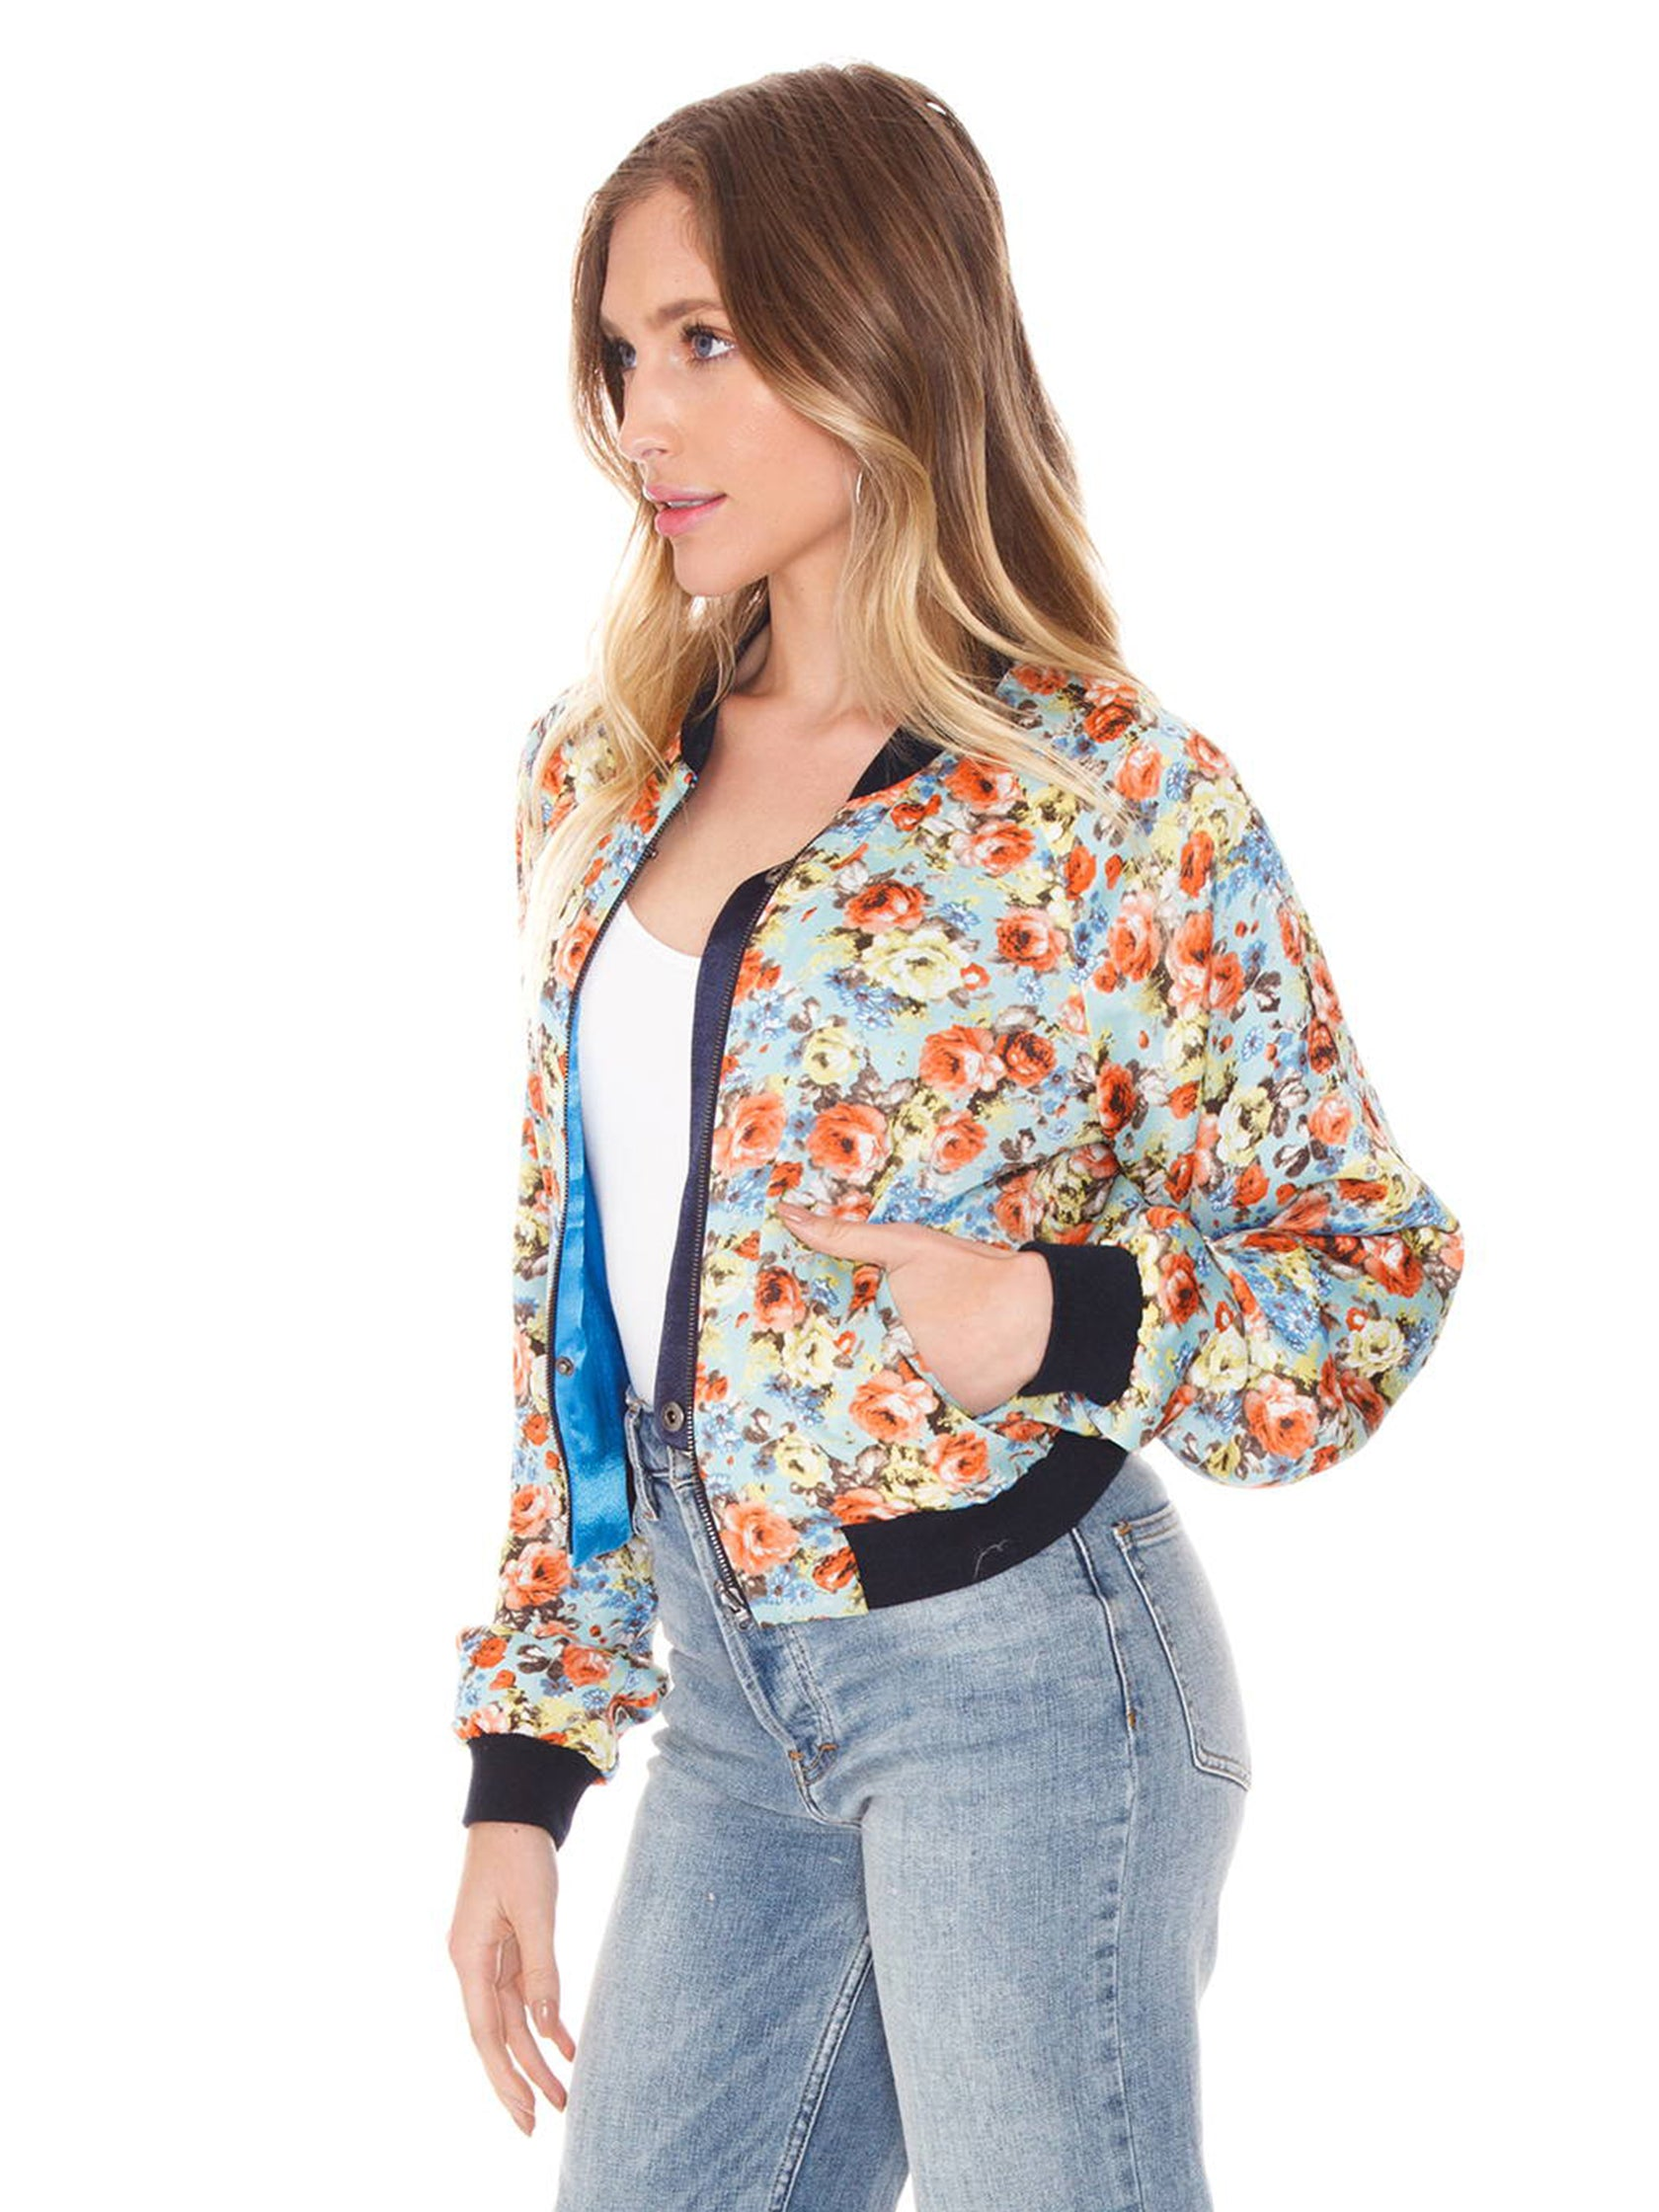 Woman wearing a jacket rental from FLETCH called Blue Reversible Bomber